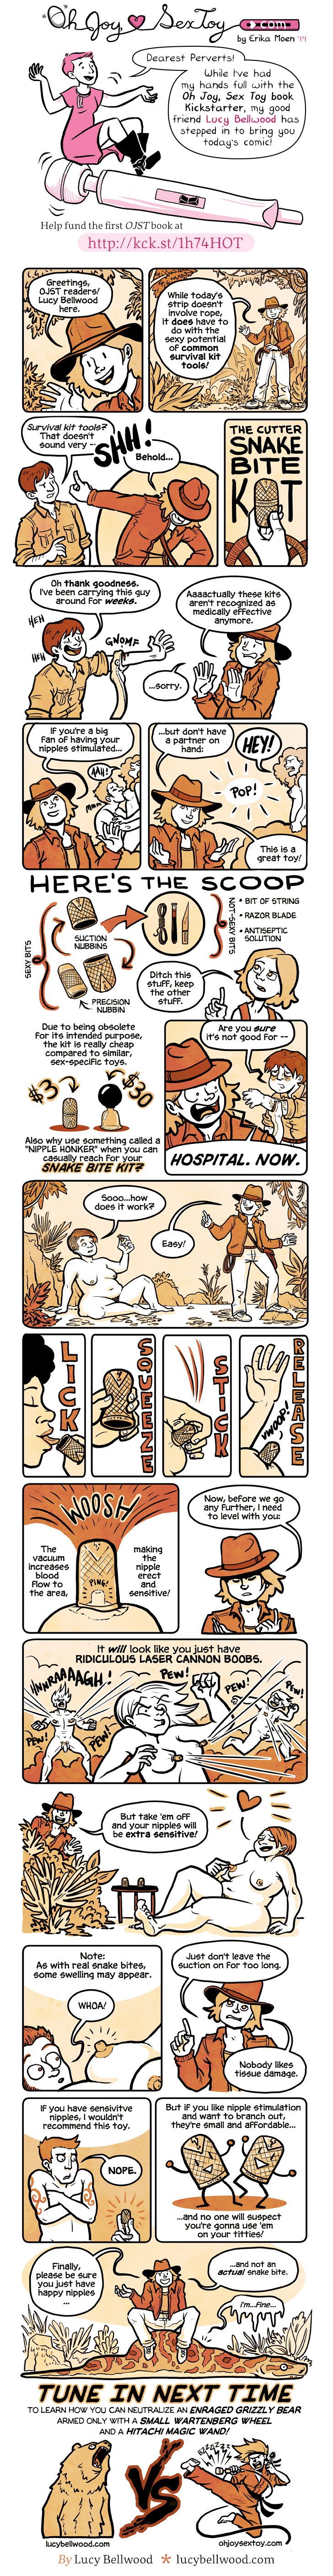 a comic about using obsolete snakebite kits as DIY nipple stimulation toys